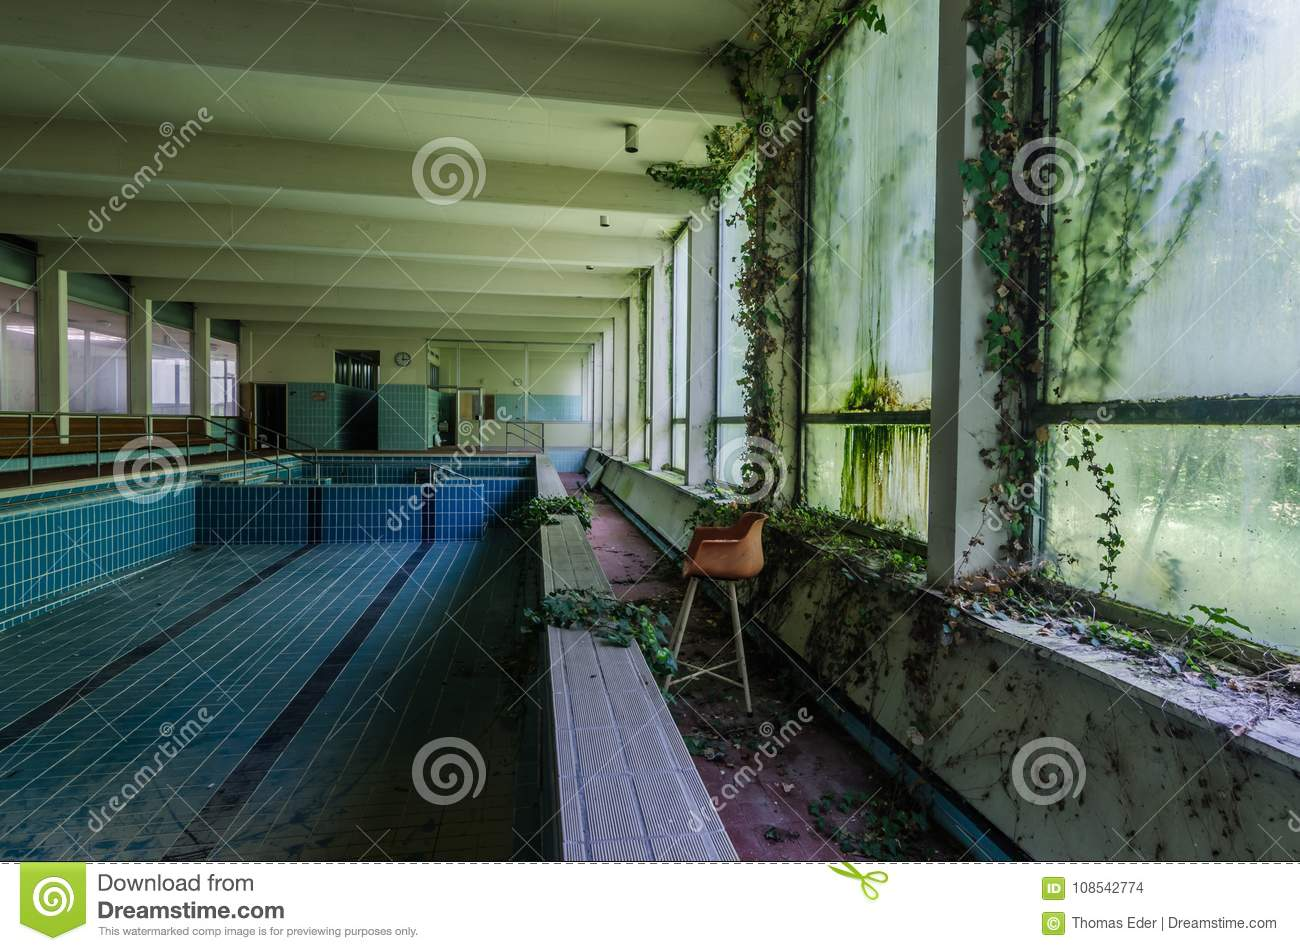 Abandoned Swimming Pool With Plants Stock Photo Image Of House Discovery 108542774